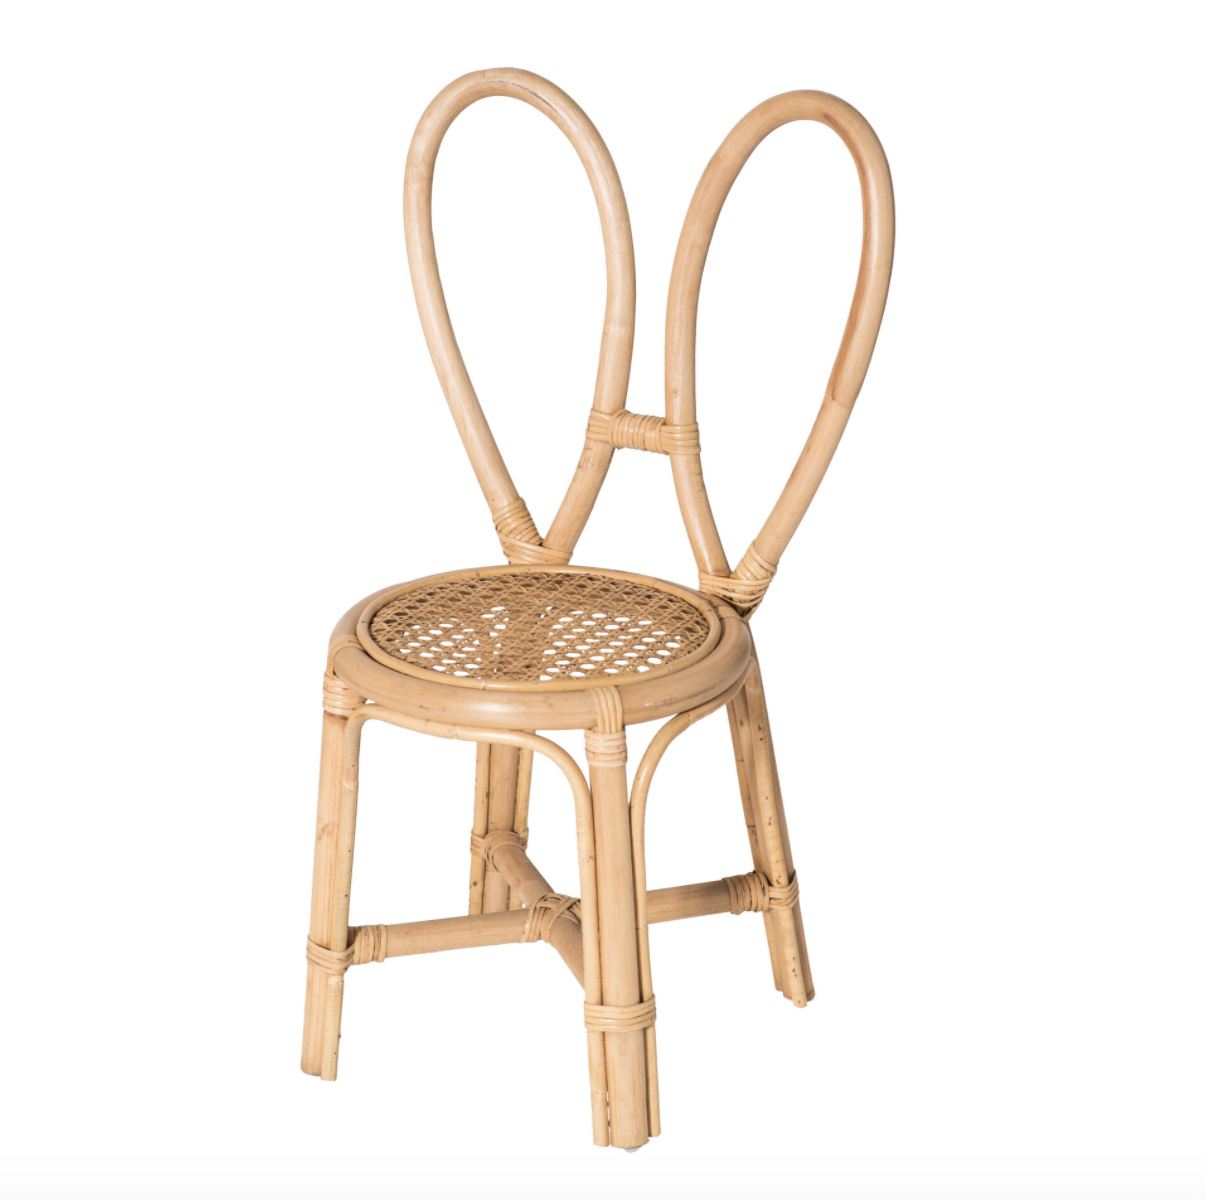 A rattan chair whose back is designed to look like bunny ears in a white space.